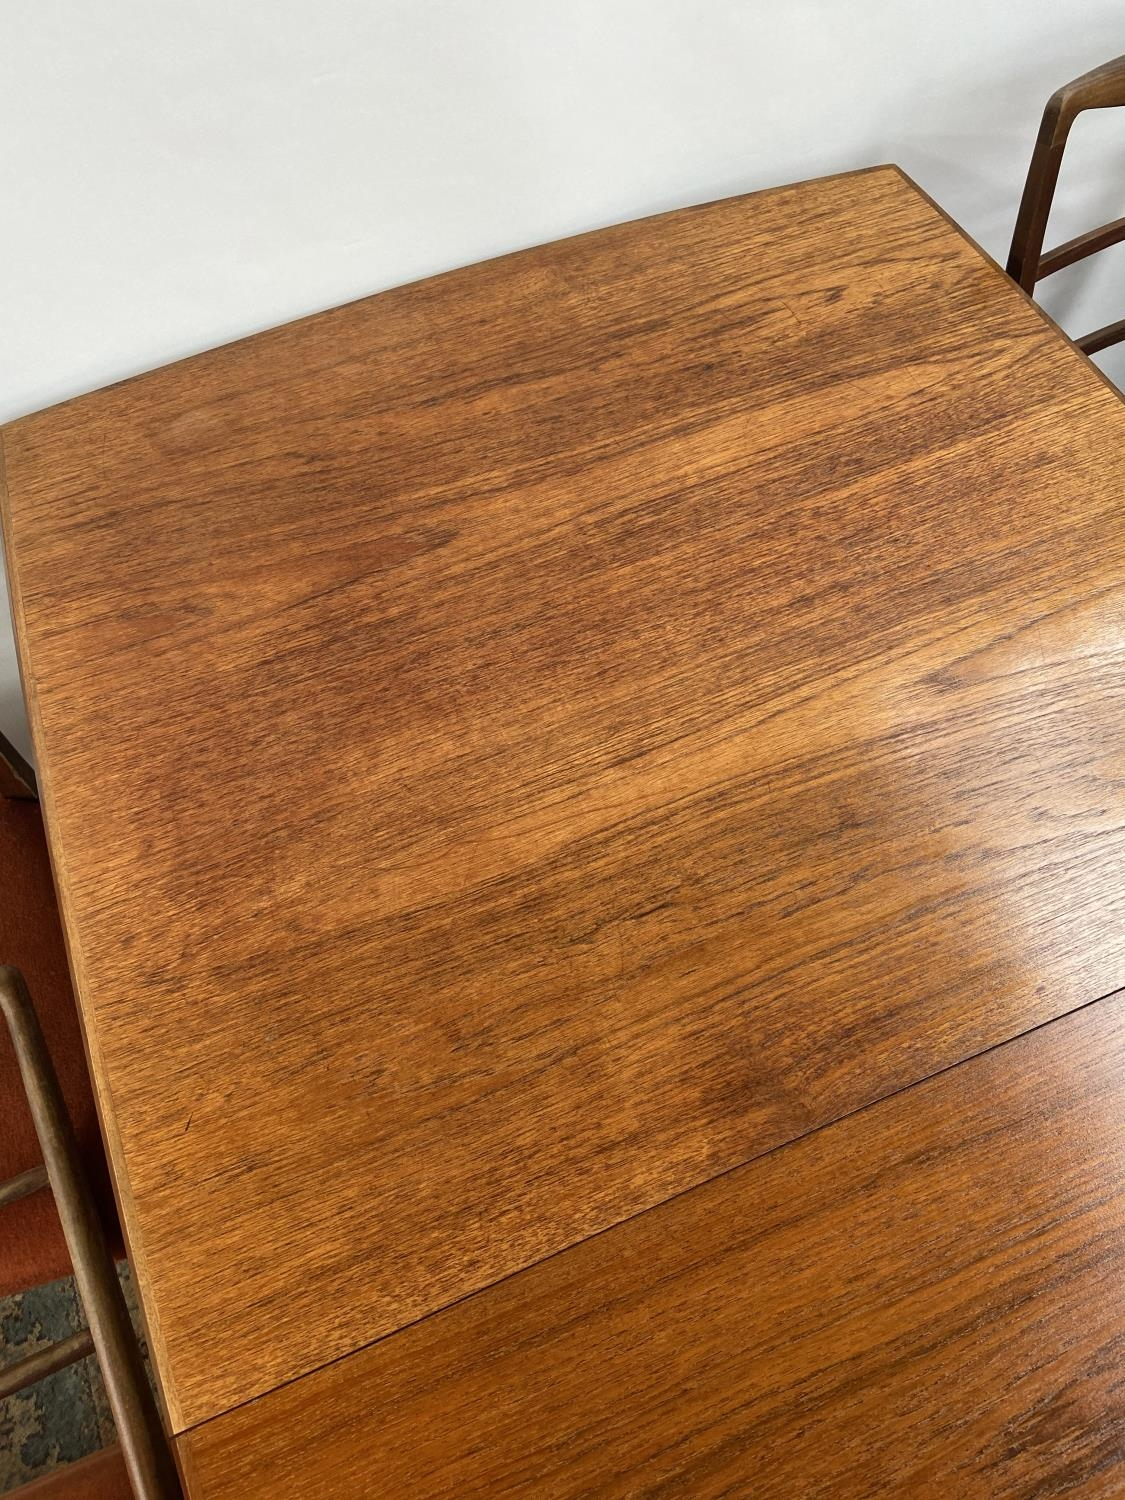 A Retro mid century teak dining table and four matching chairs produced by Vanson. [Table extended - Image 7 of 13